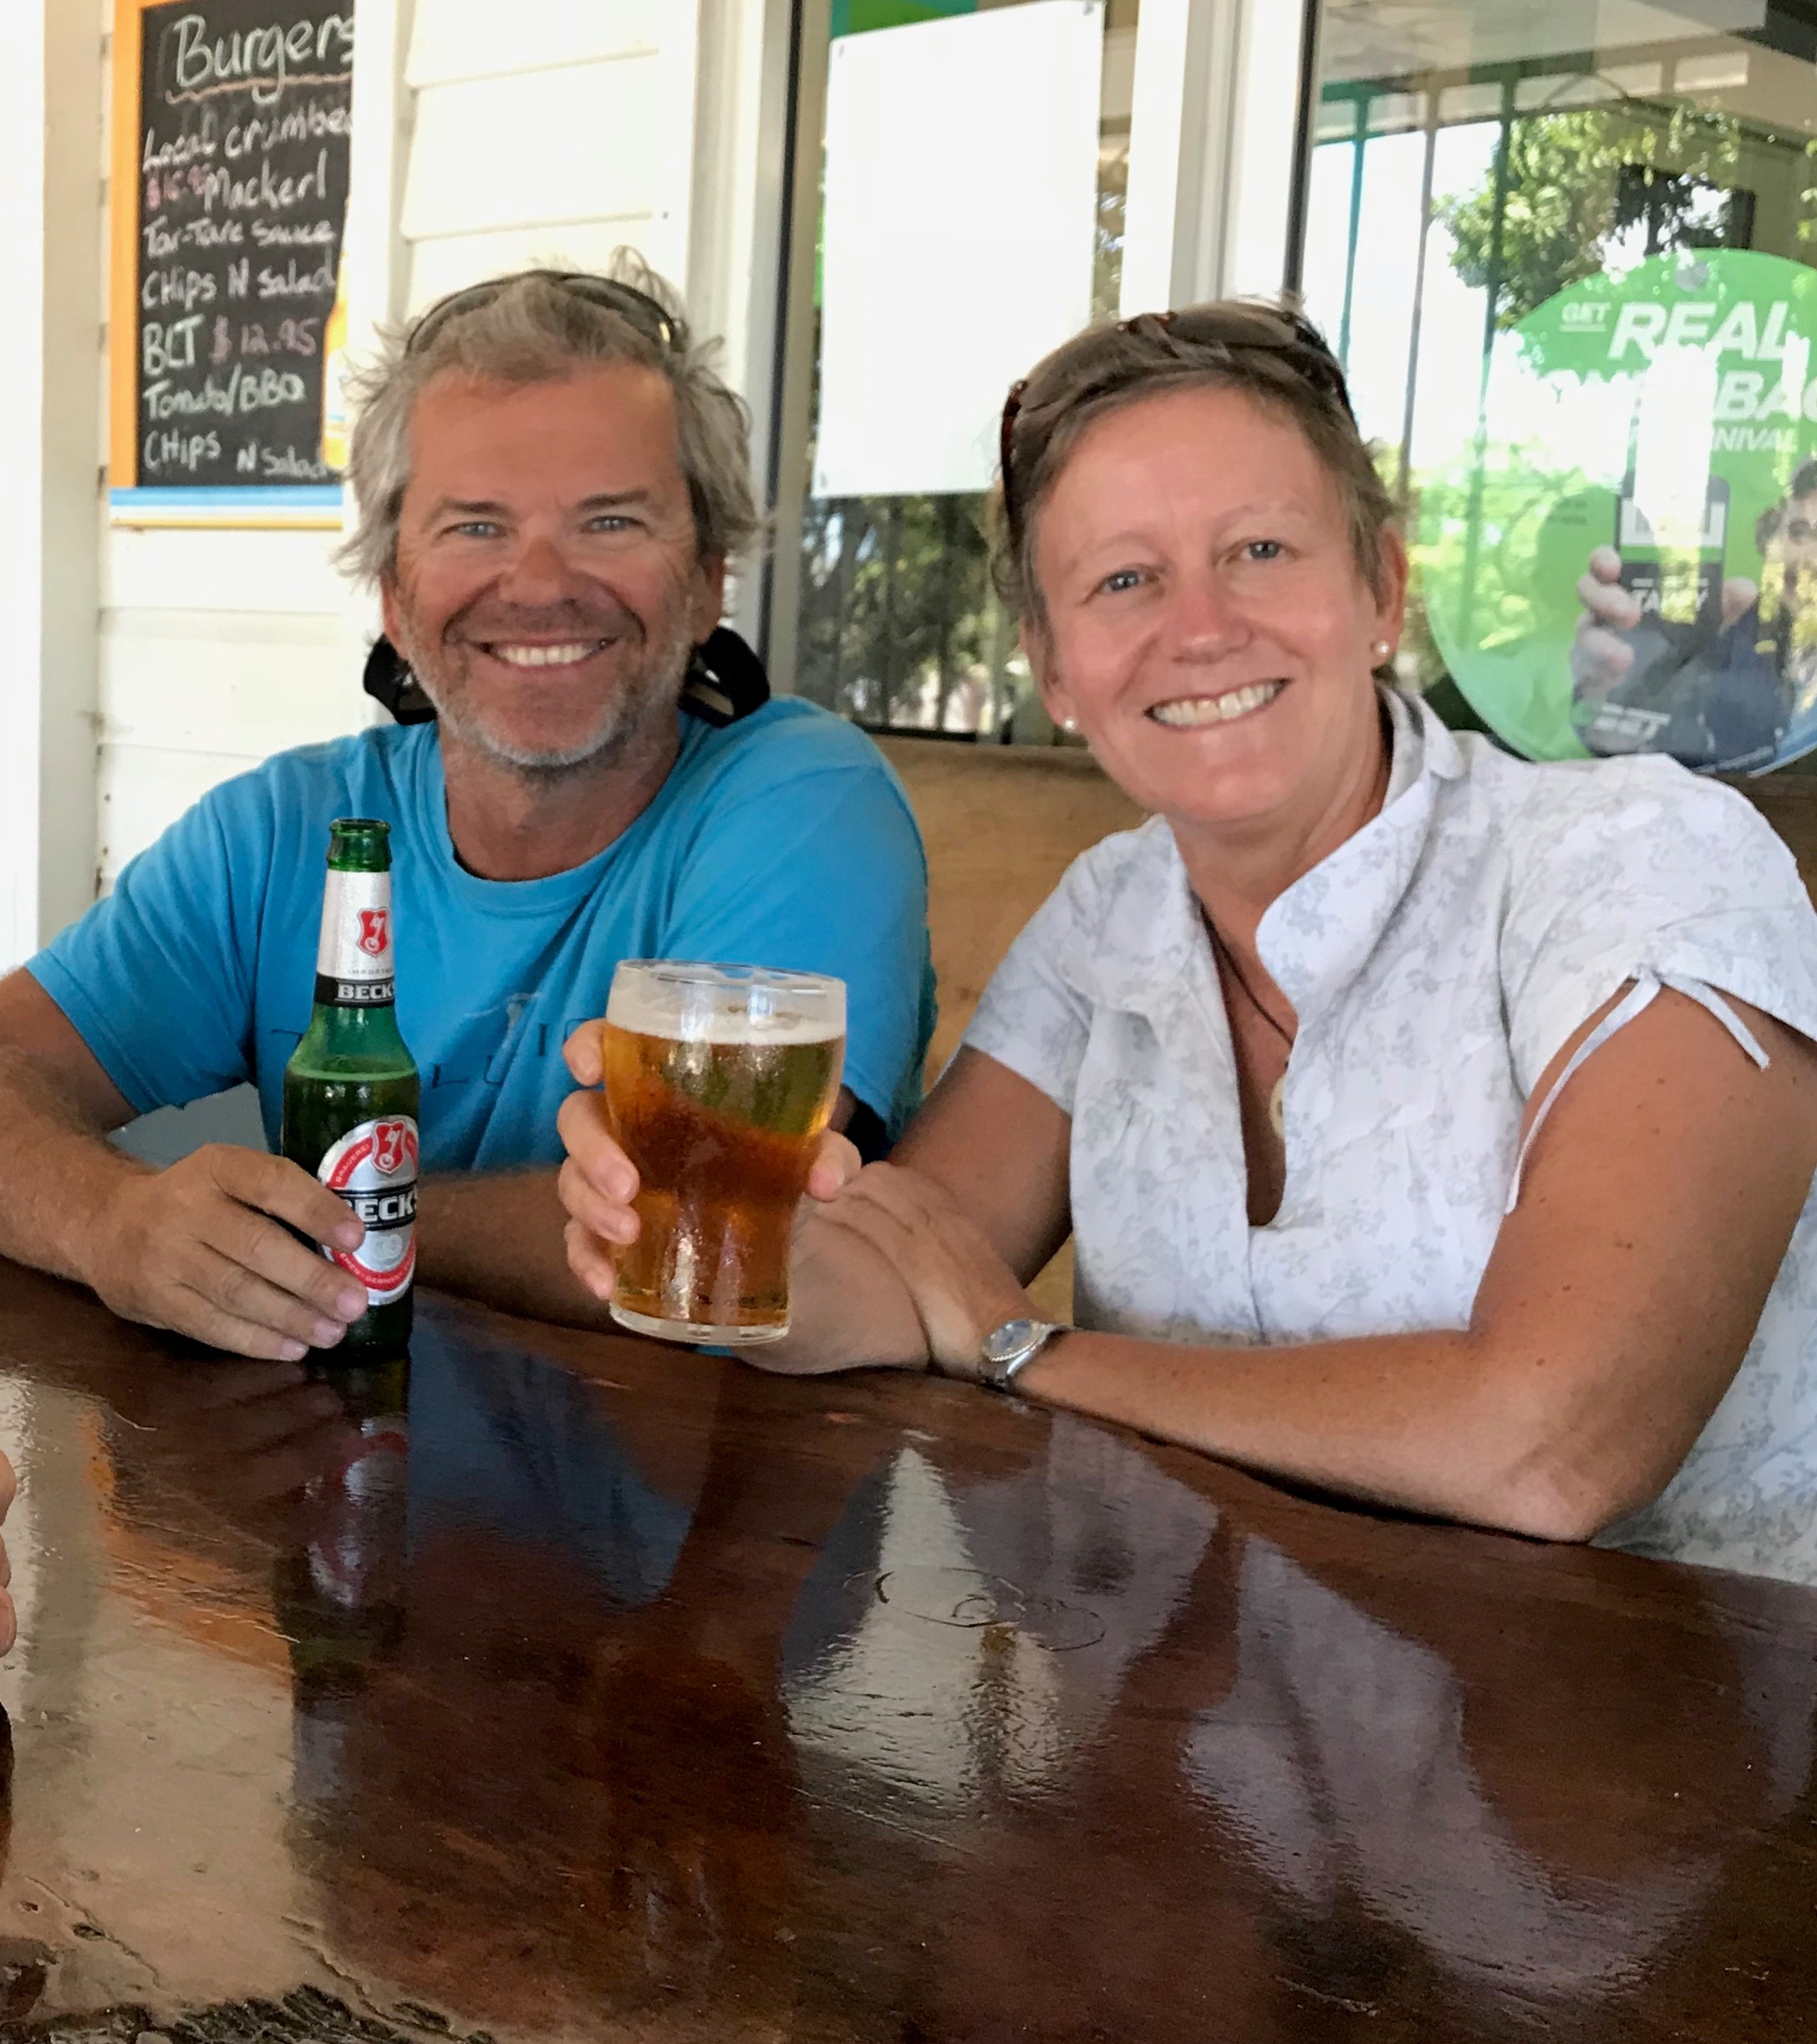 Northern Most pub in Australia - the torres hotel. Cheers!